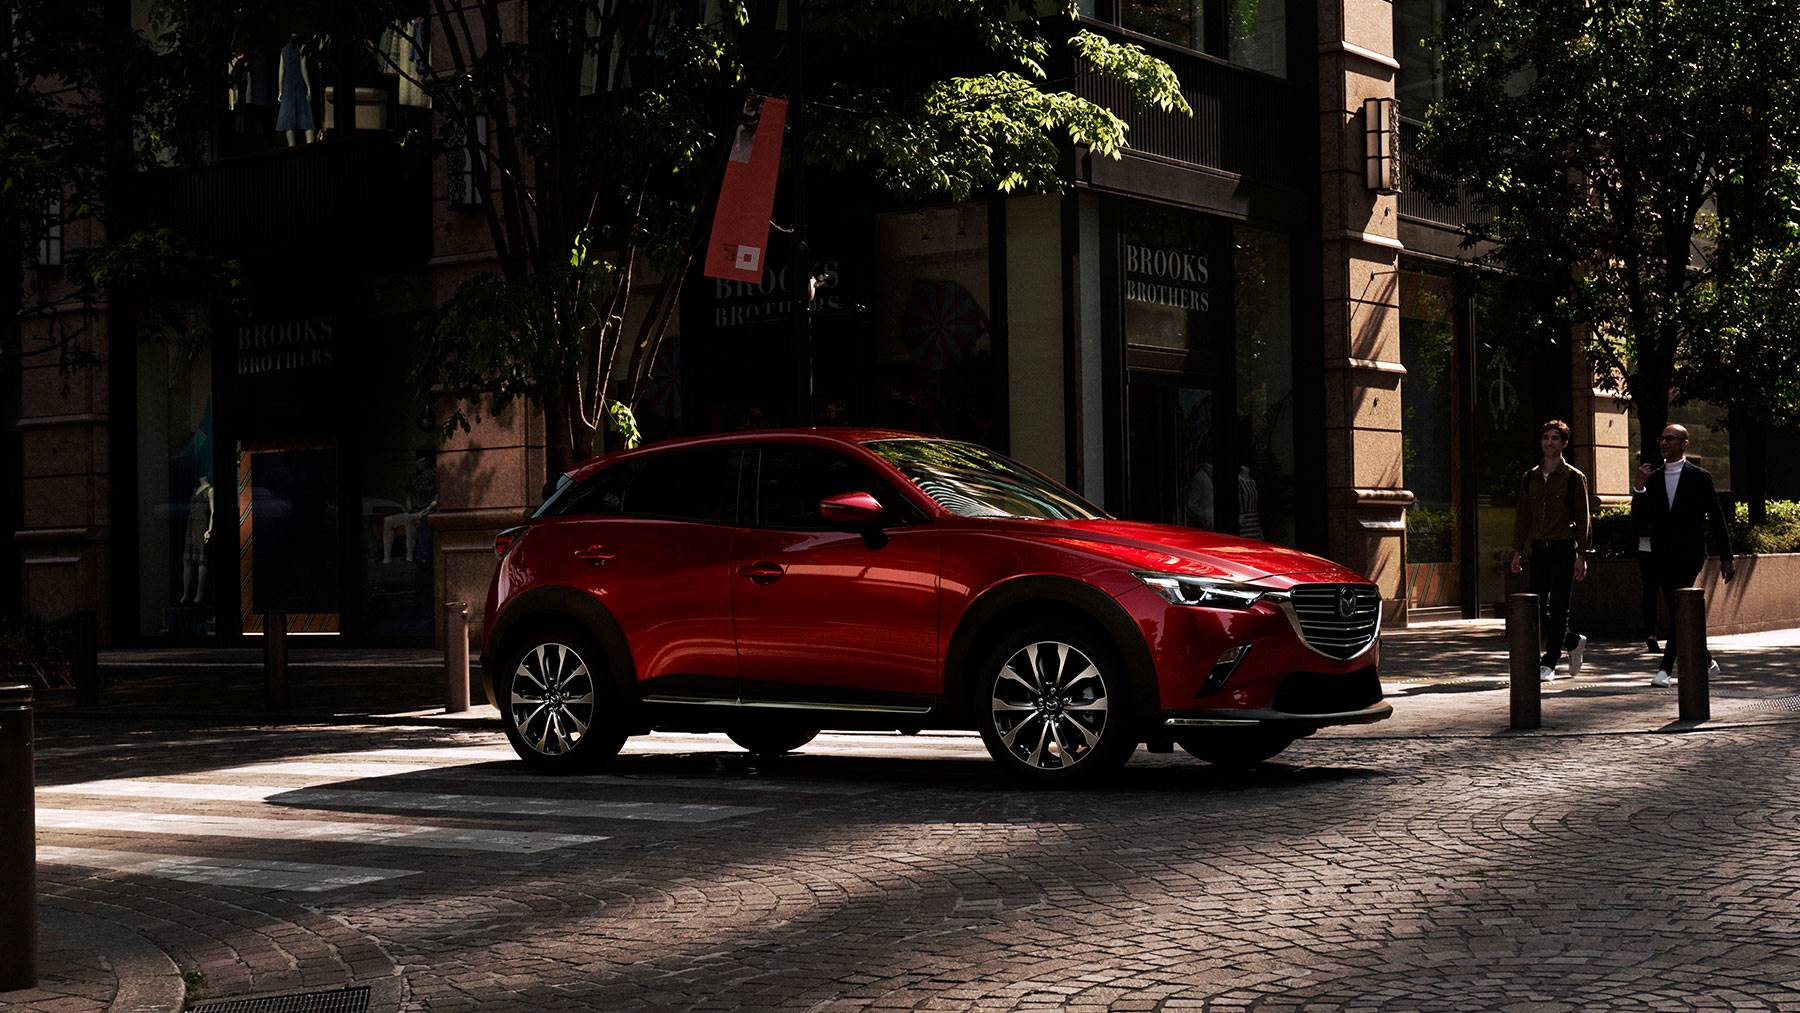 2019 Mazda CX-3 for Sale near Austin, TX